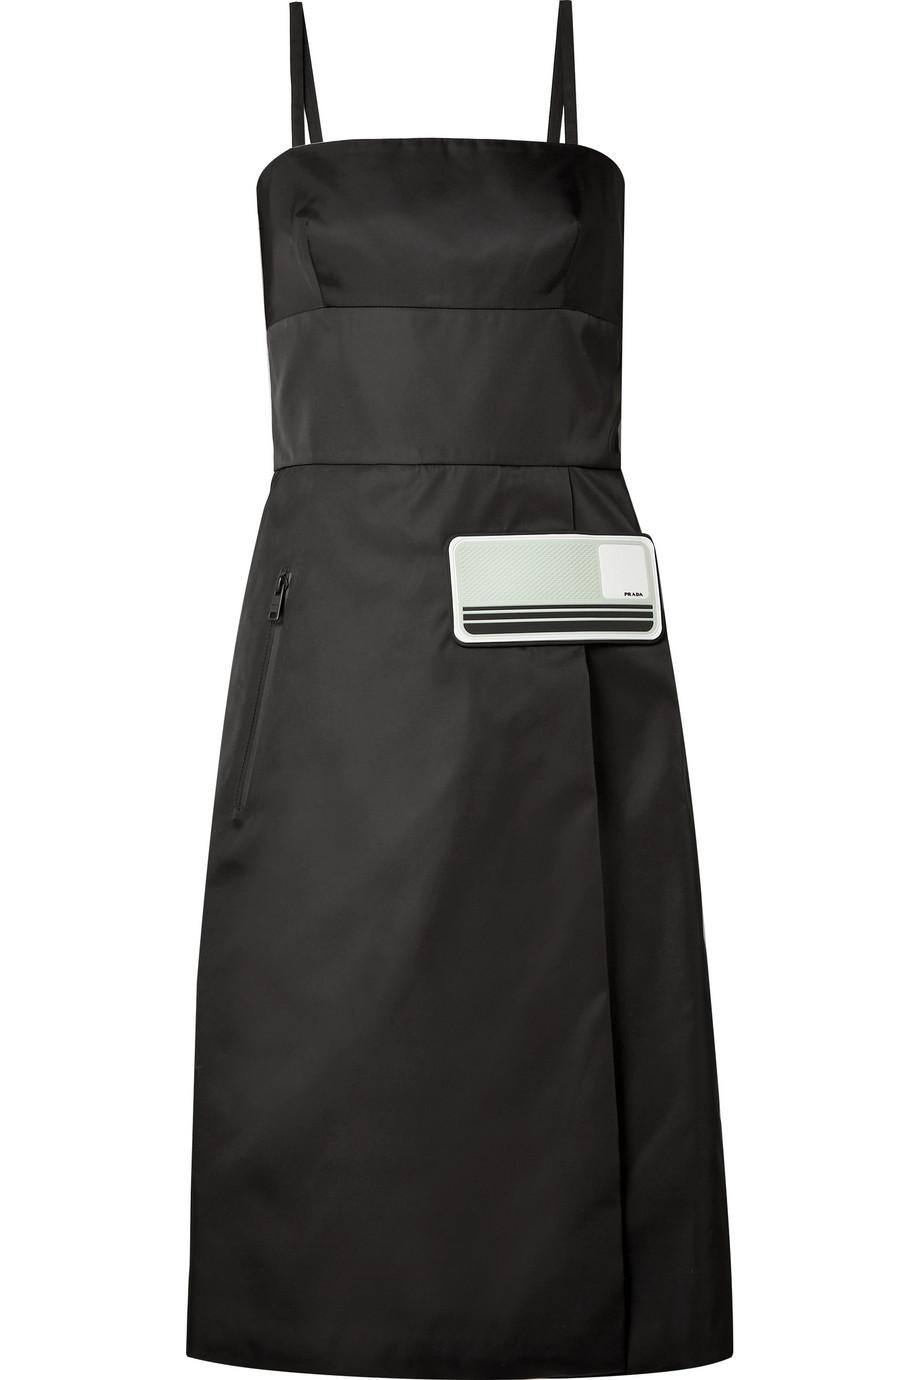 Rubber-appliqu</ototo></div>                                   <span></span>                               </div>             <div>                                     <div>                                             <div>                                                     <p>                                                           <small>                                 Buy direct SAVE! No Sales Tax to US Residents! FREE Priority shipping on US orders over $100!                             </small>                                                       </p>                                                 </div>                                         </div>                                     <div>                                             <div>                                                     <ul>                                                             <li>                                                               </li>                                                             <li>                                                                   <a href=